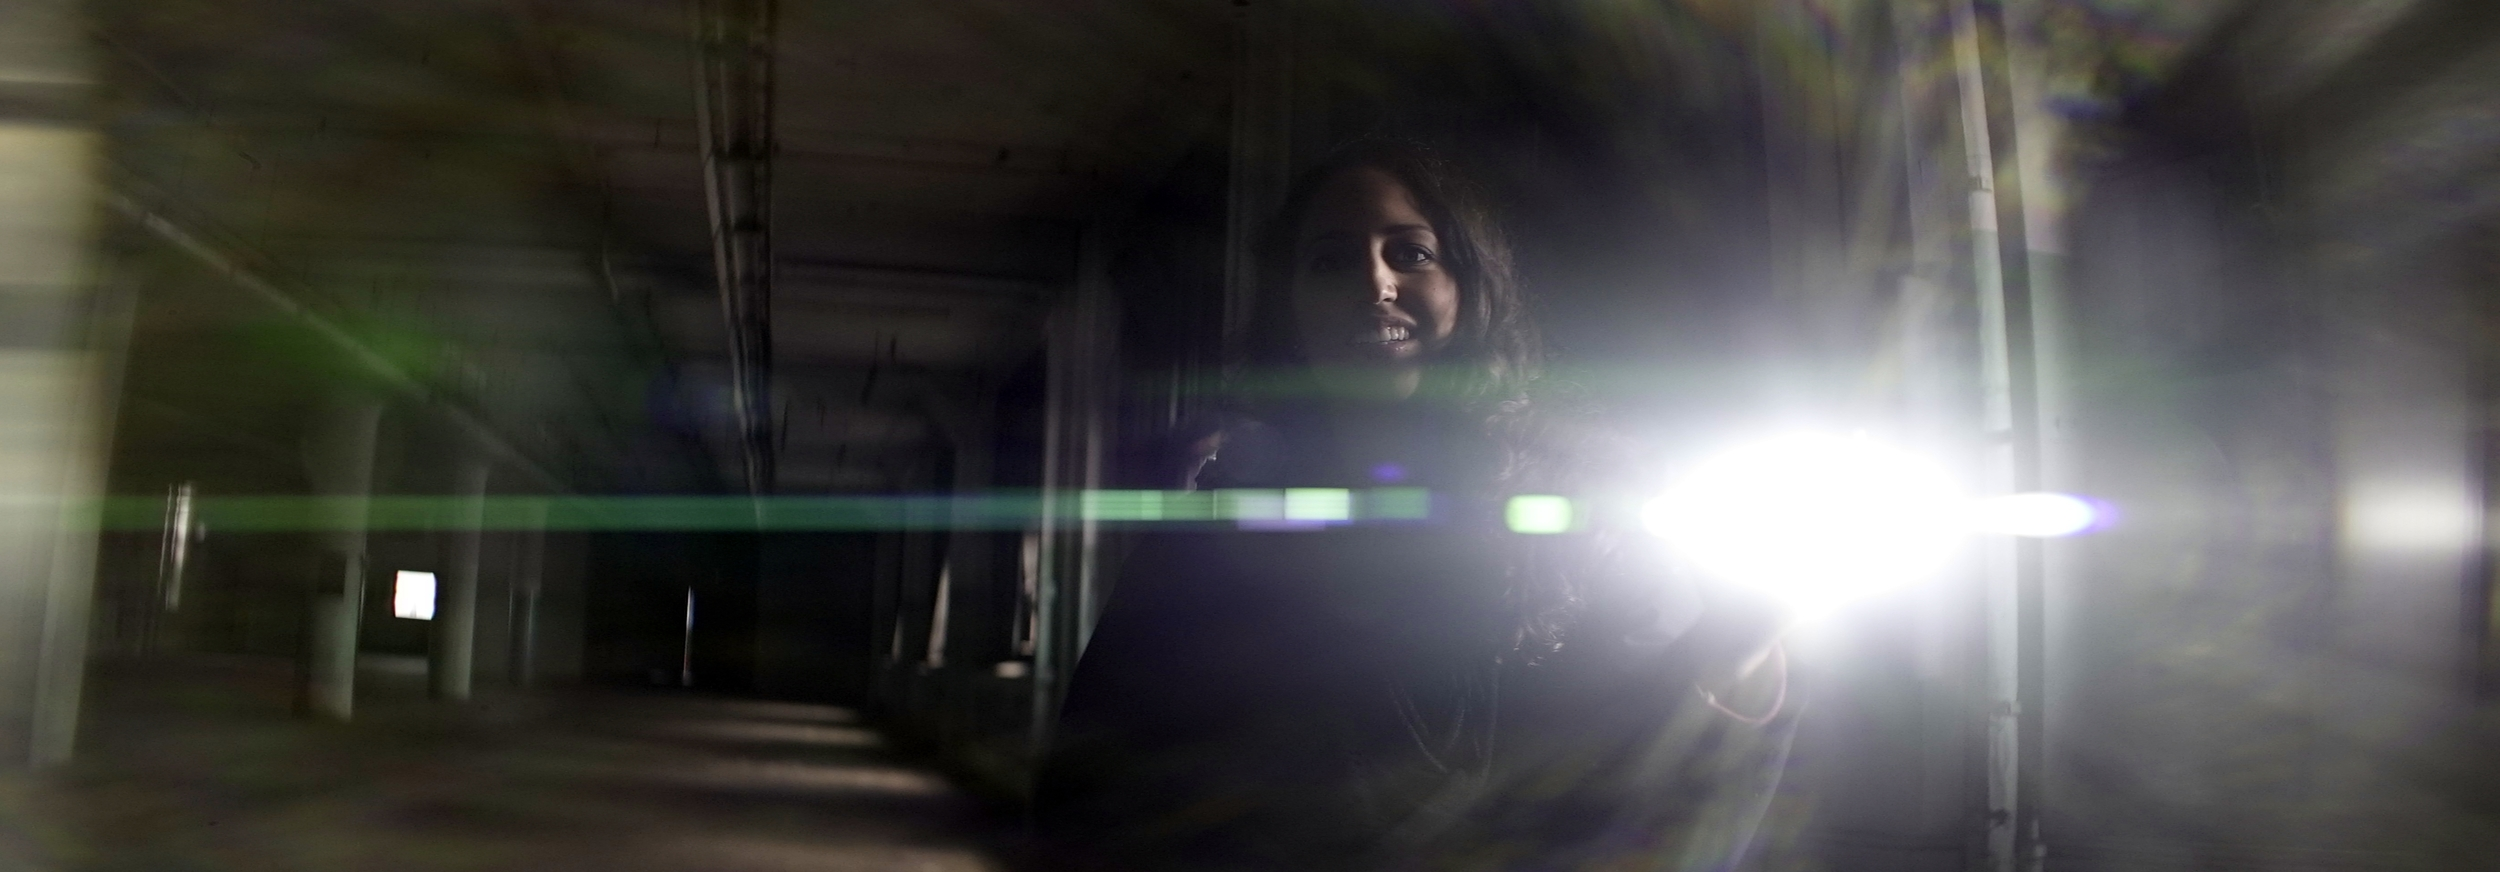 Elite 24.5mm anamorphic | Warehouse, Cleveland, OH - Lens flare triggered by Olivia Otten with the Nitecore P12 flashlight. Image captured wide open at T2.1. Image displayed full gate, 3.00:1. Photo by Keith Nickoson.